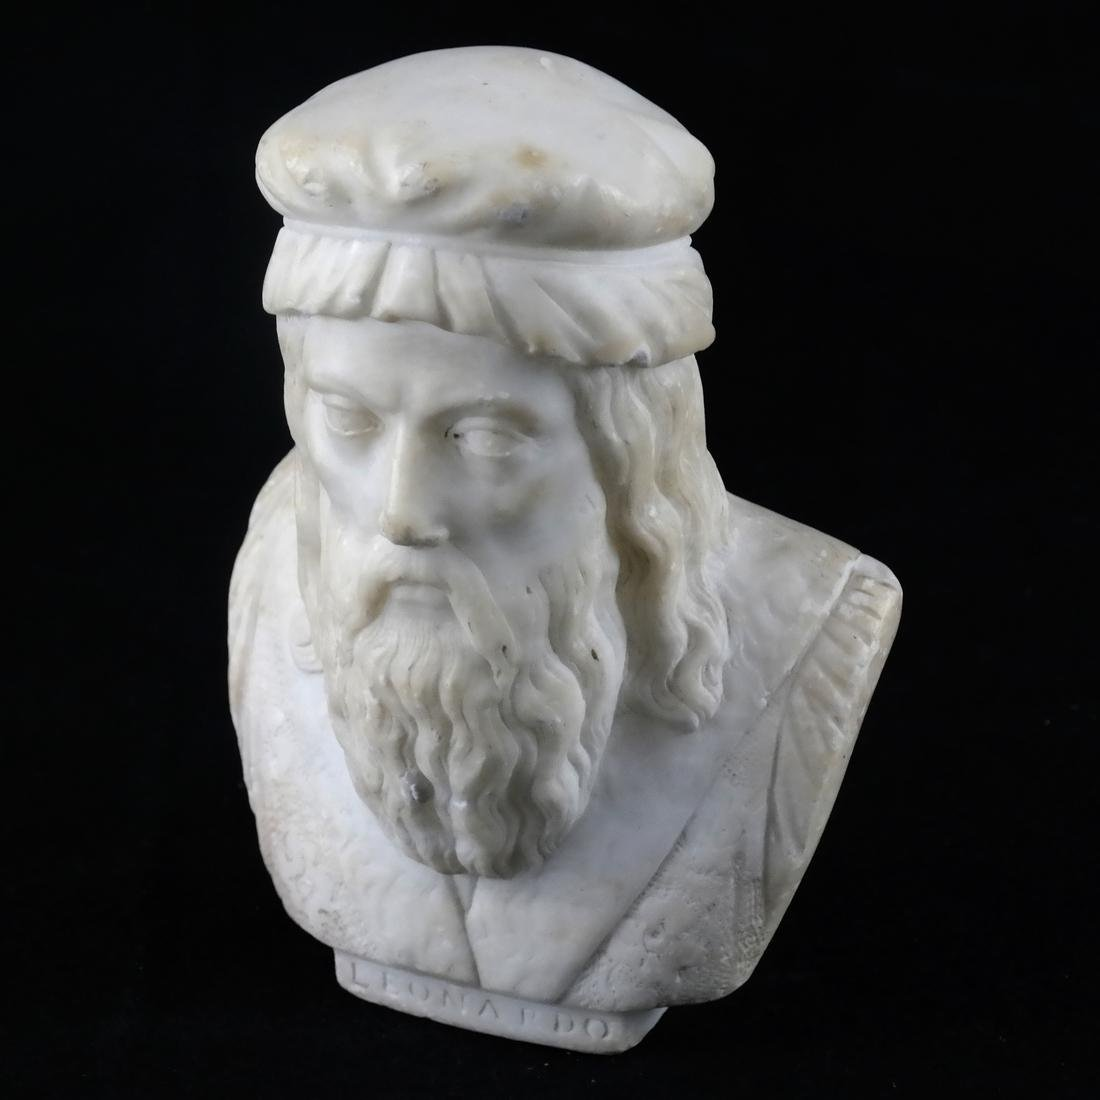 Miniature Marble Sculpture of a Bearded Man